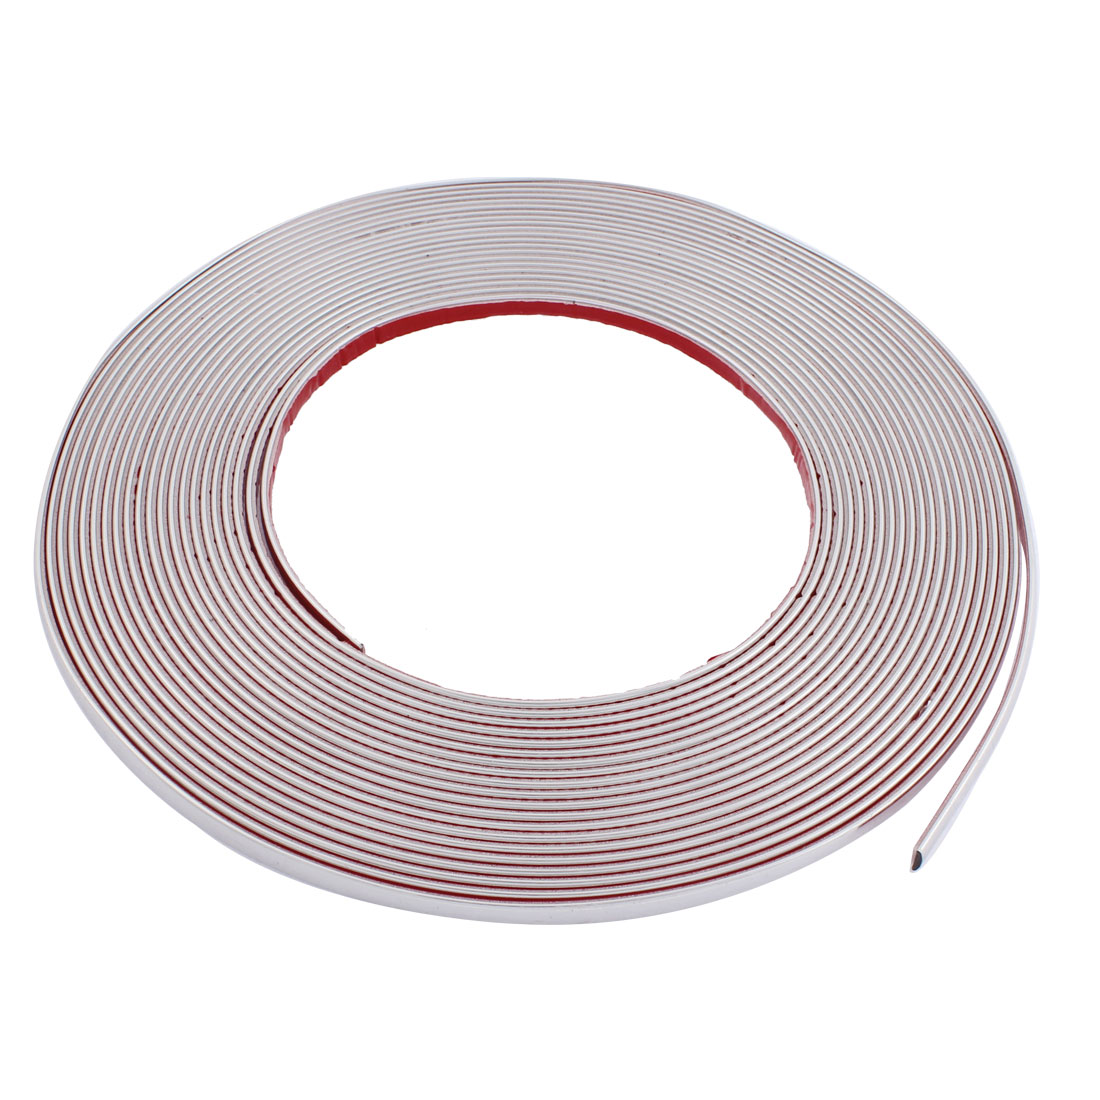 Car Door Edge 8mm Wide Self Adhesive Edging Moulding Trim Strip 15M